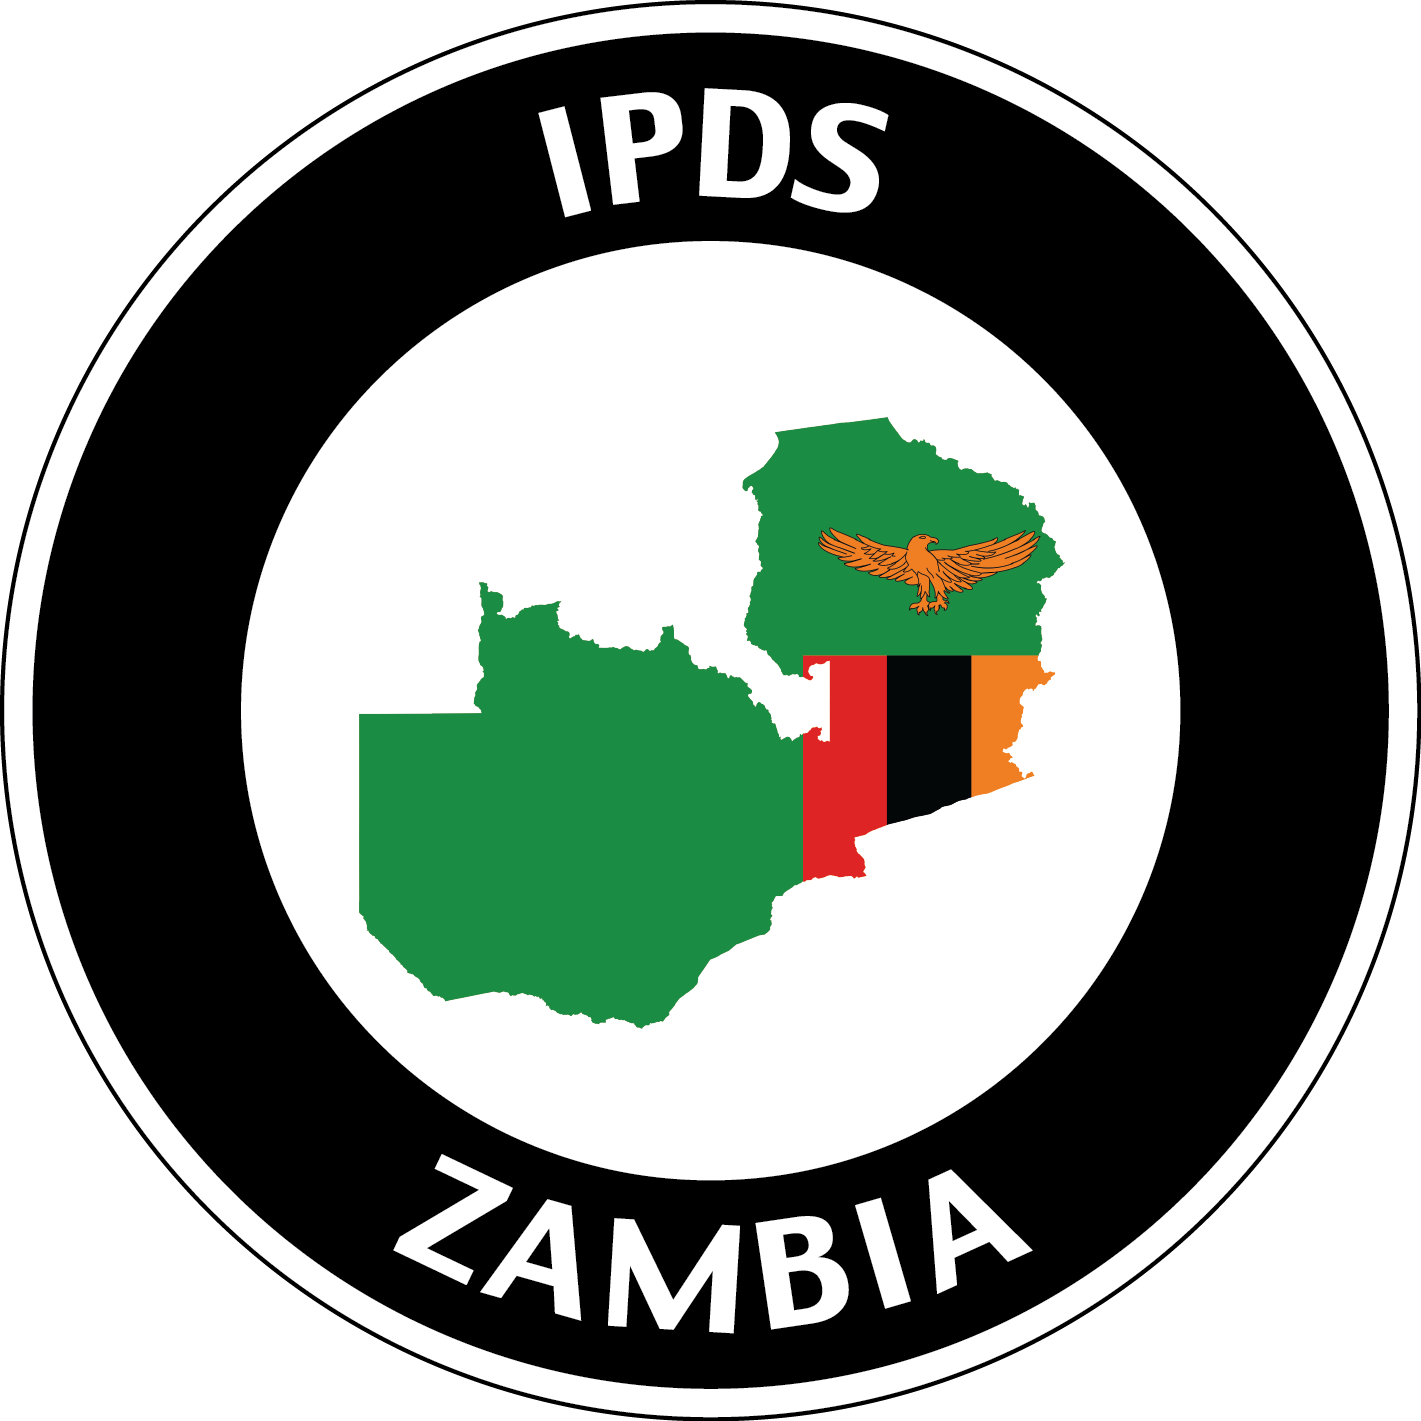 Welcome to Zambia logo with country and flag